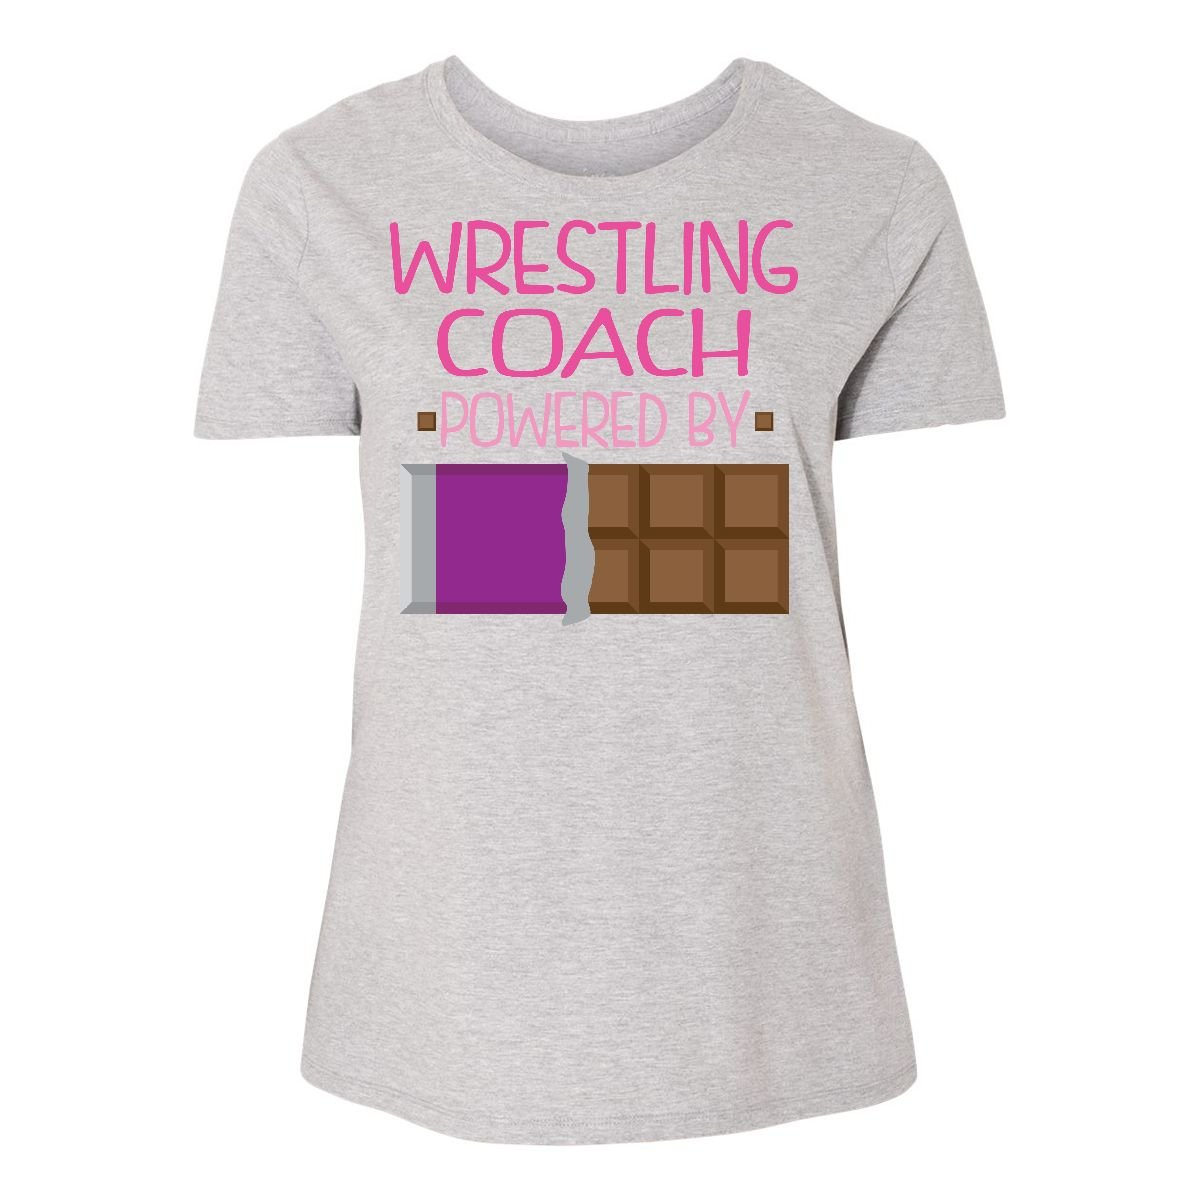 inktastic Wrestling Coach Funny Women's Plus Size T-Shirt 2 (18/20) Steel Grey